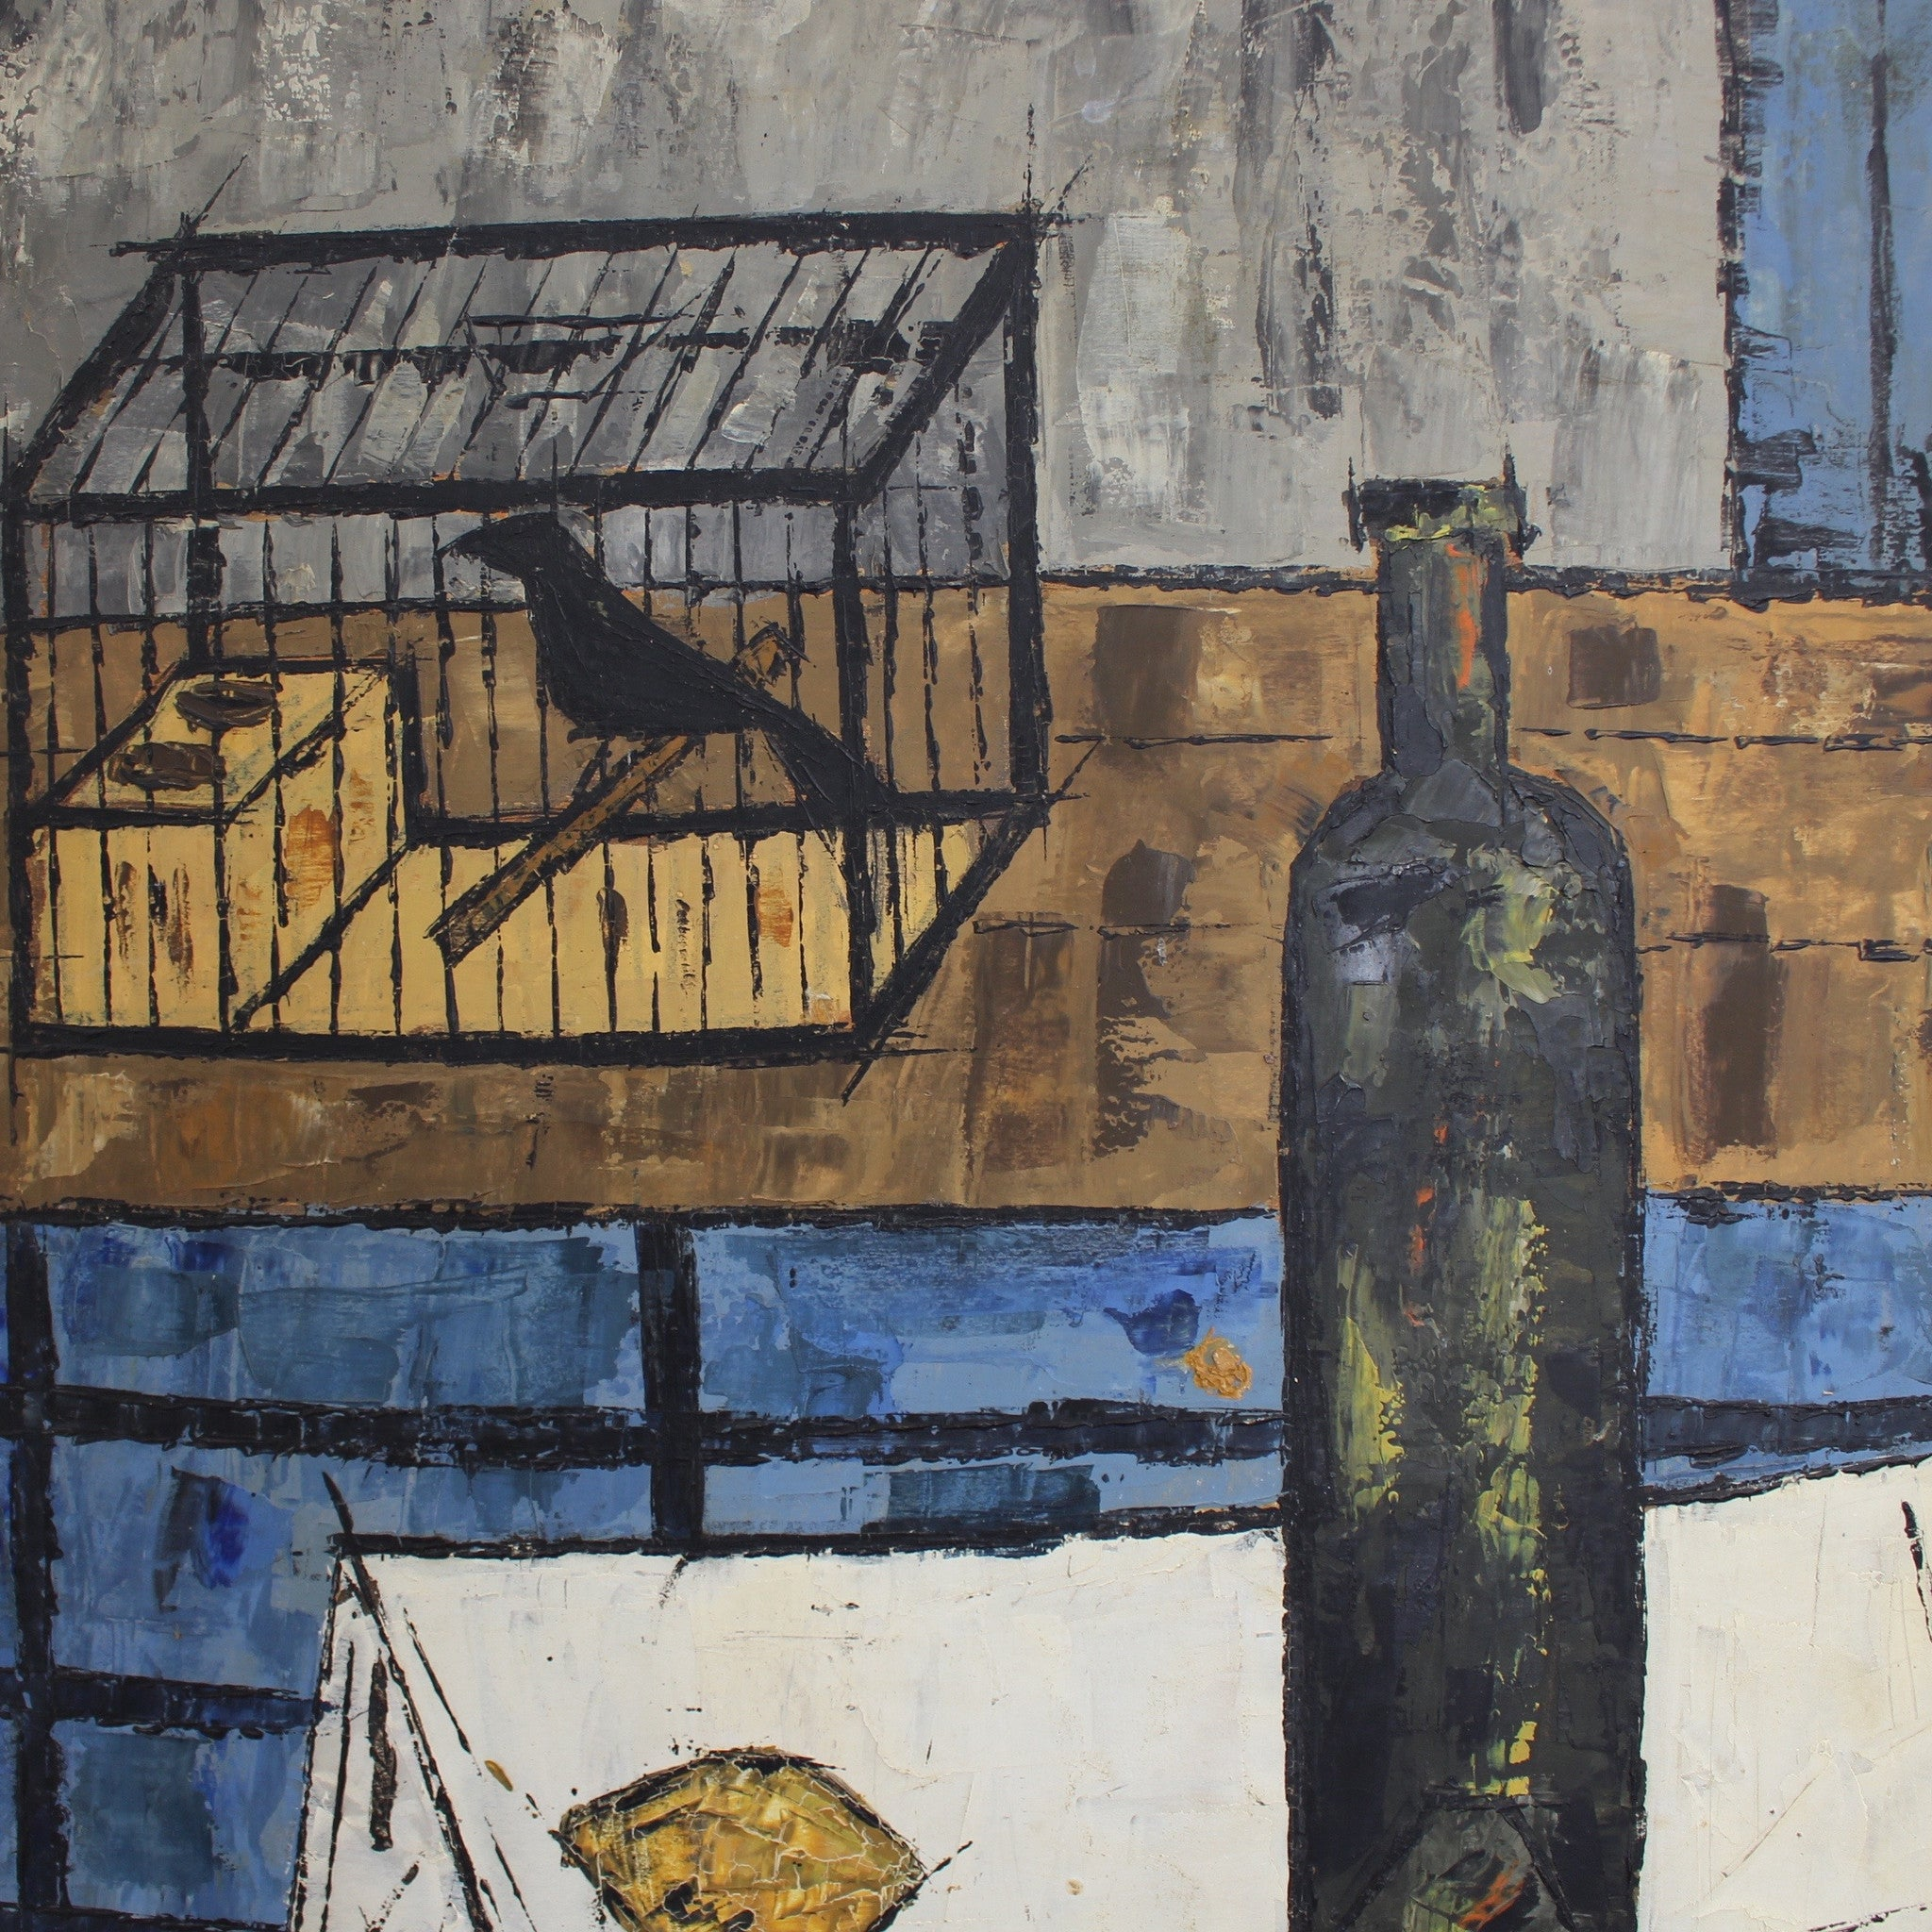 'Still Life with Raven, Lemon and Wine Bottle' by Vicenç Caraltó (1959)